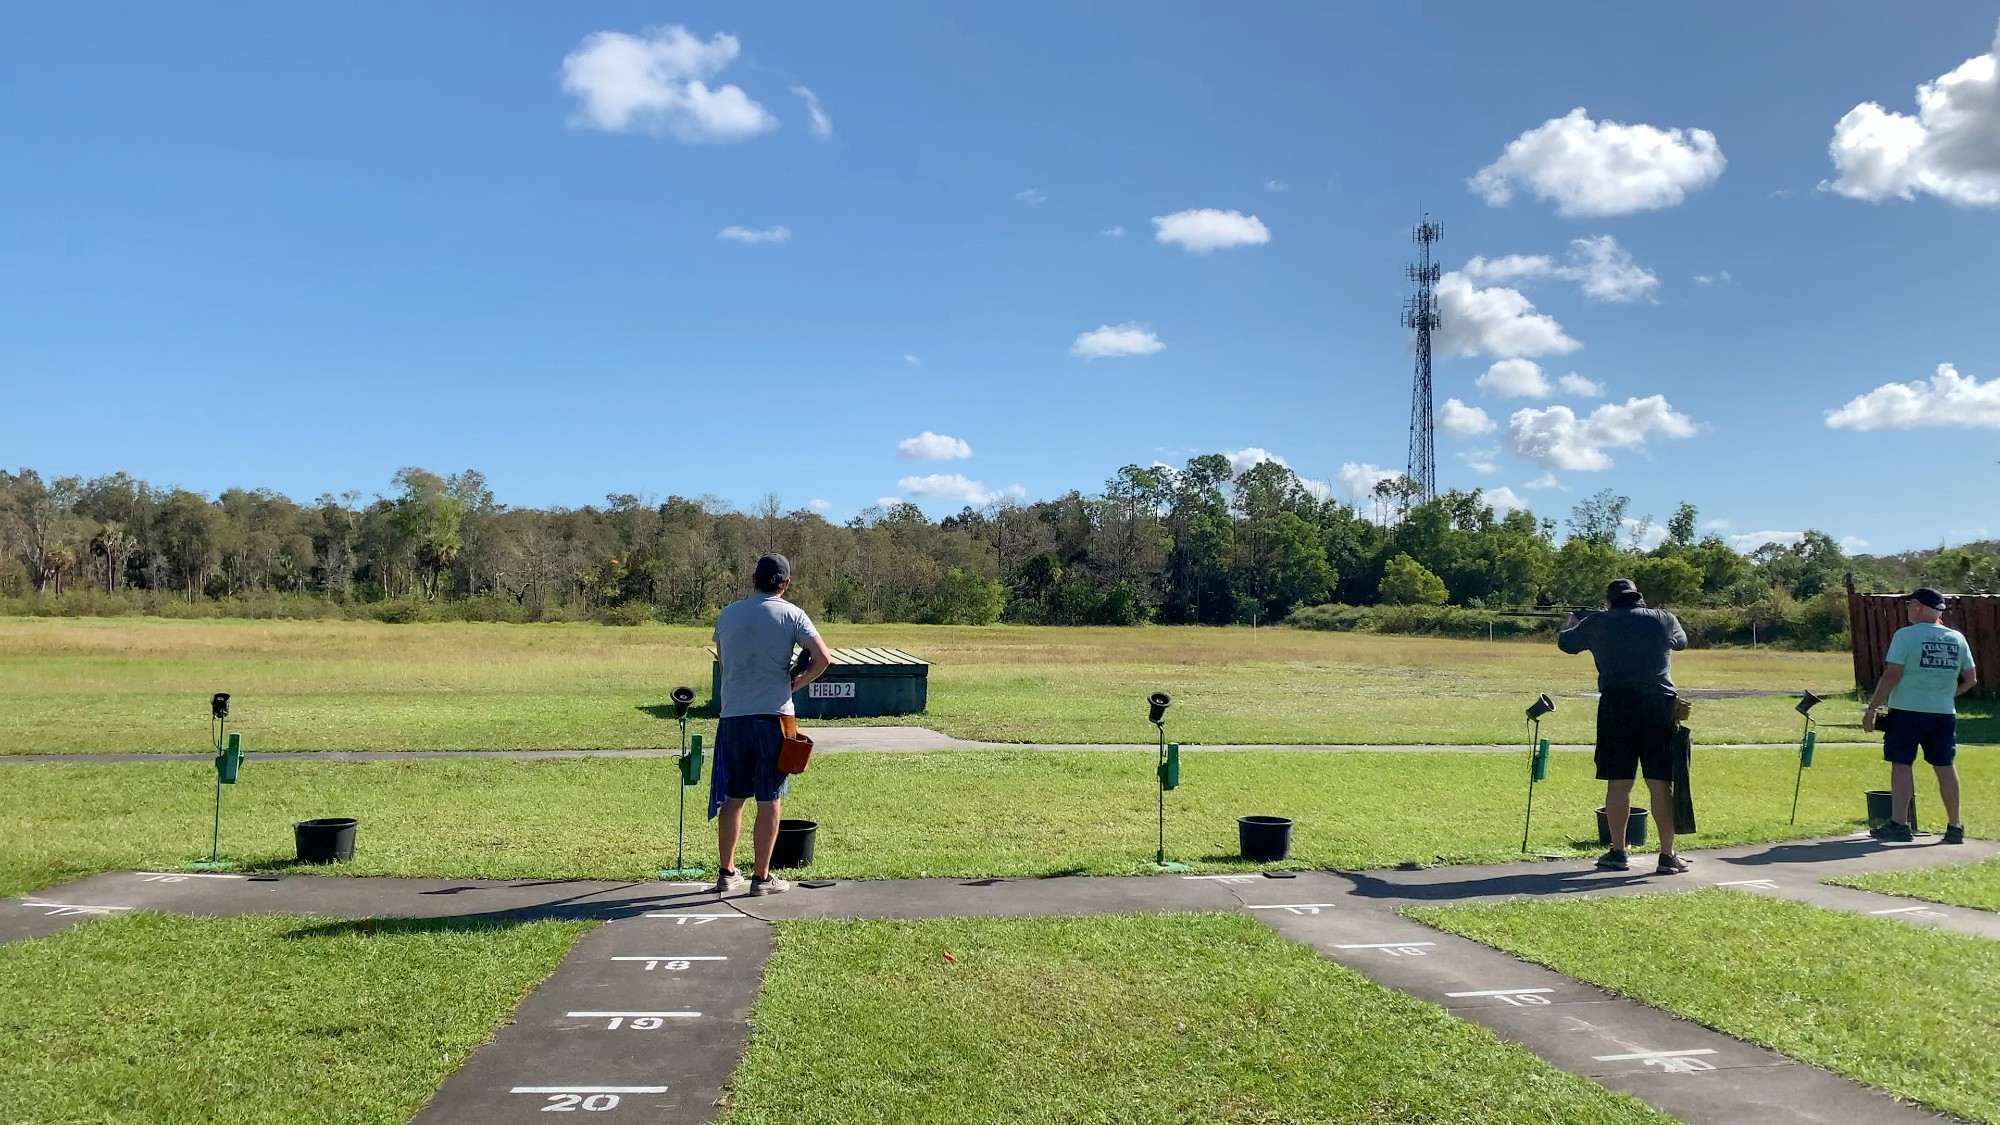 A group of trapshooters on a trap field at Gulf Coast Clays